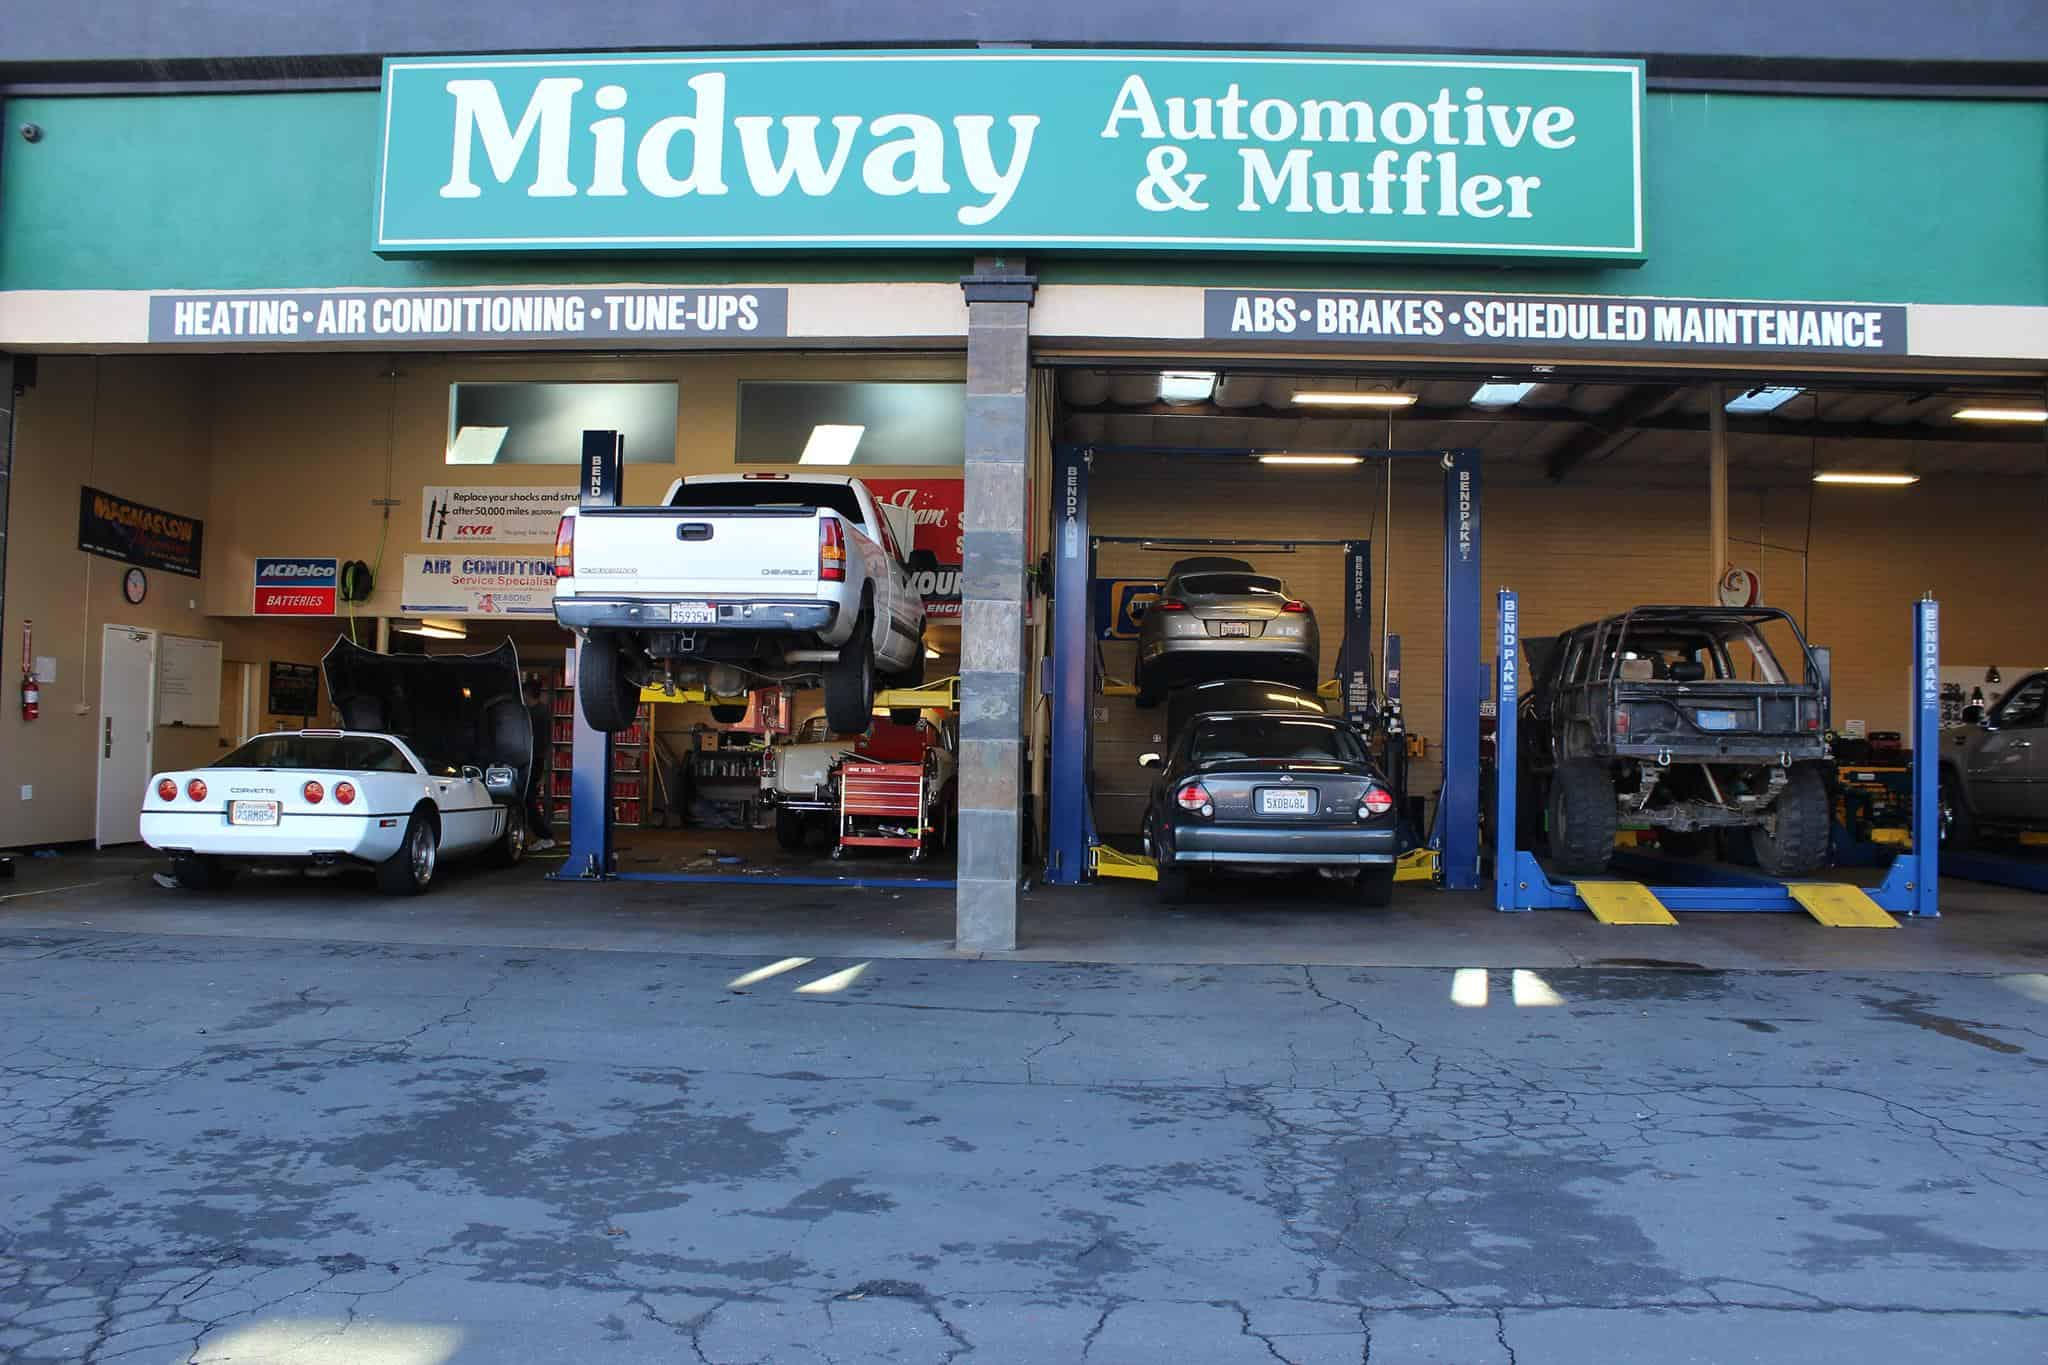 This Automotive Service Company Does Customer Service Right